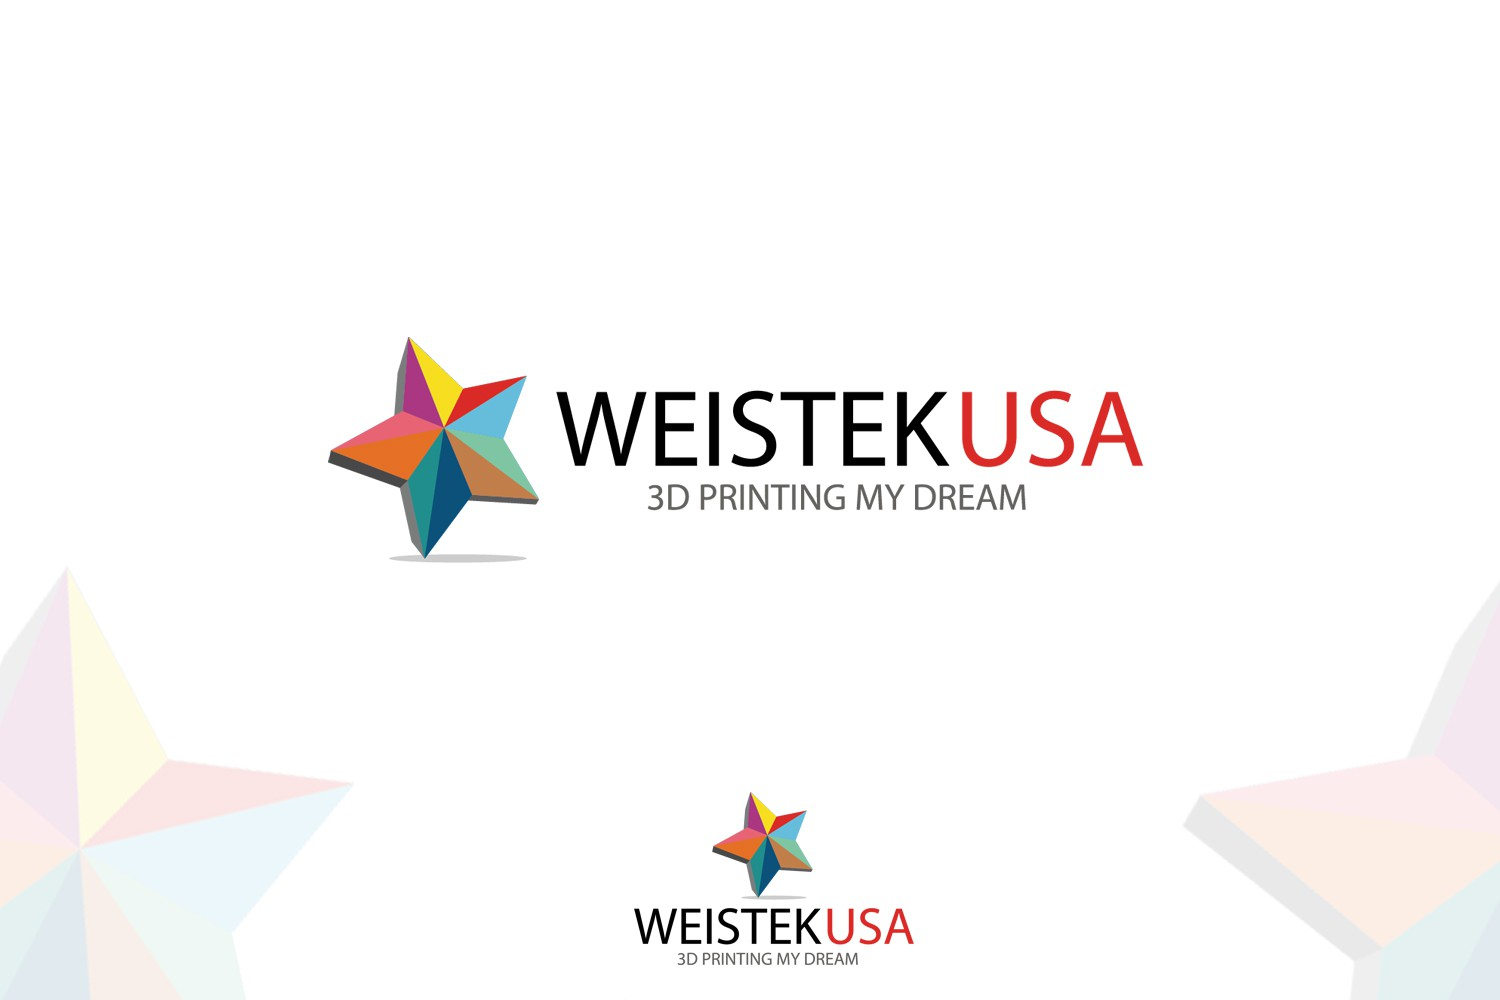 Create a winning logo design for Weistek USA